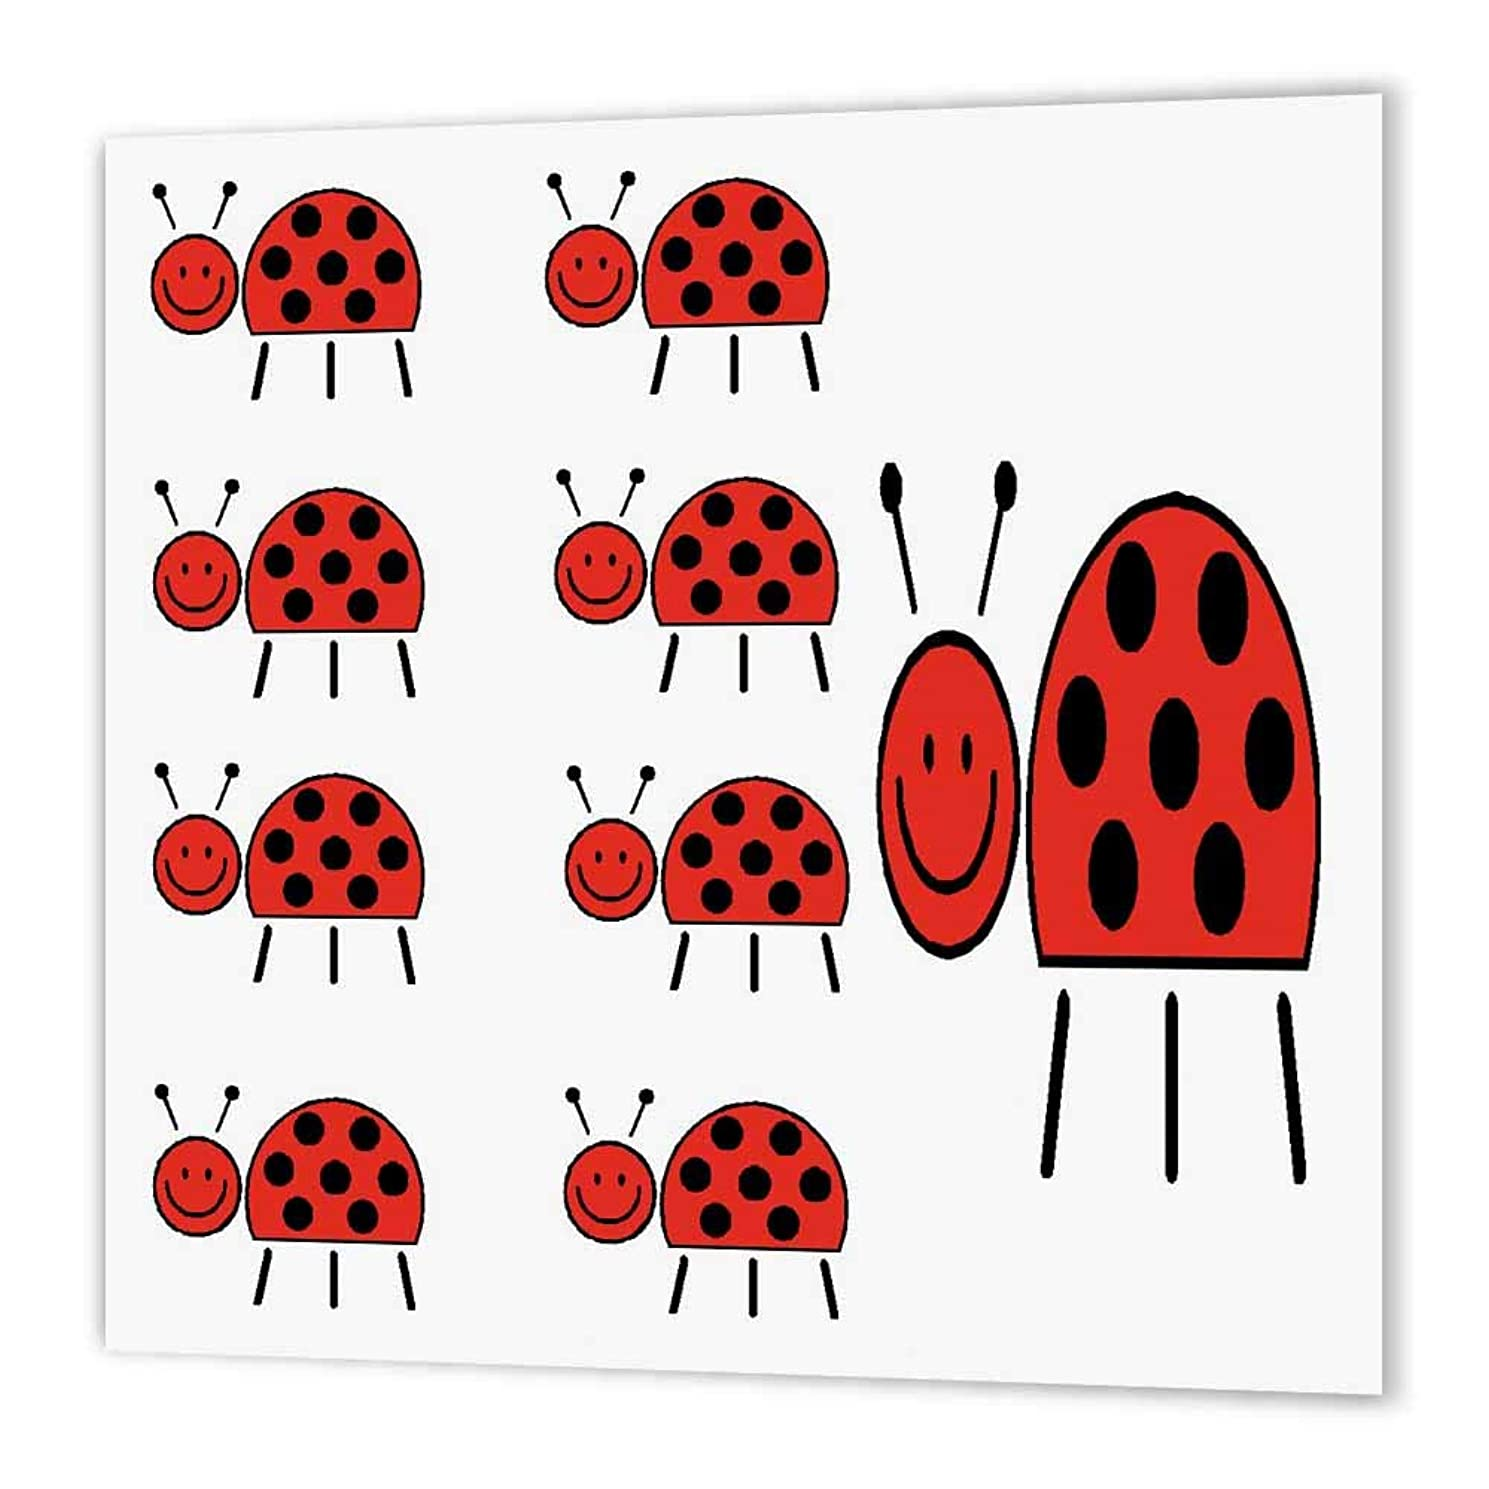 3dRose ht_19988_1 Ladybug-Iron on Heat Transfer Paper for White Material, 8 by 8-Inch